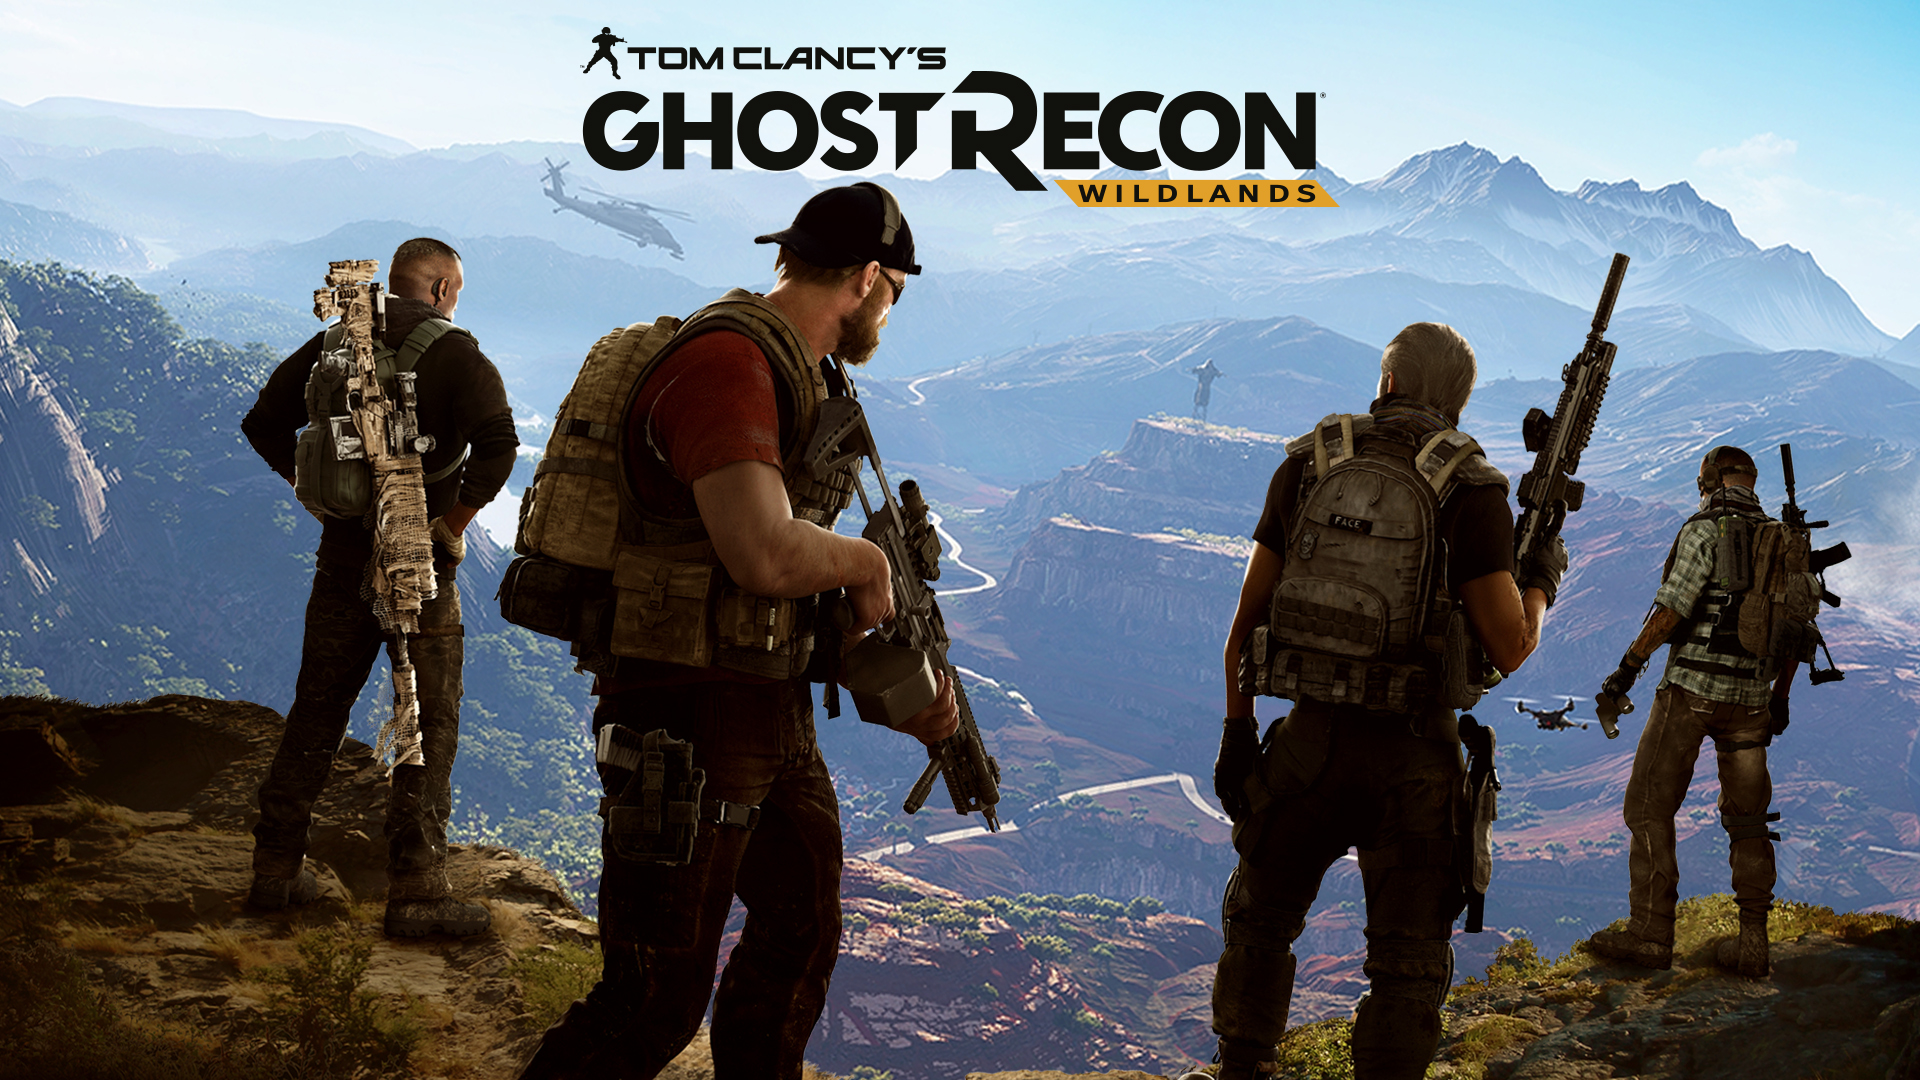 Ghost Recon Wildlands Wallpaper 1920x1080 By Sachso74 On